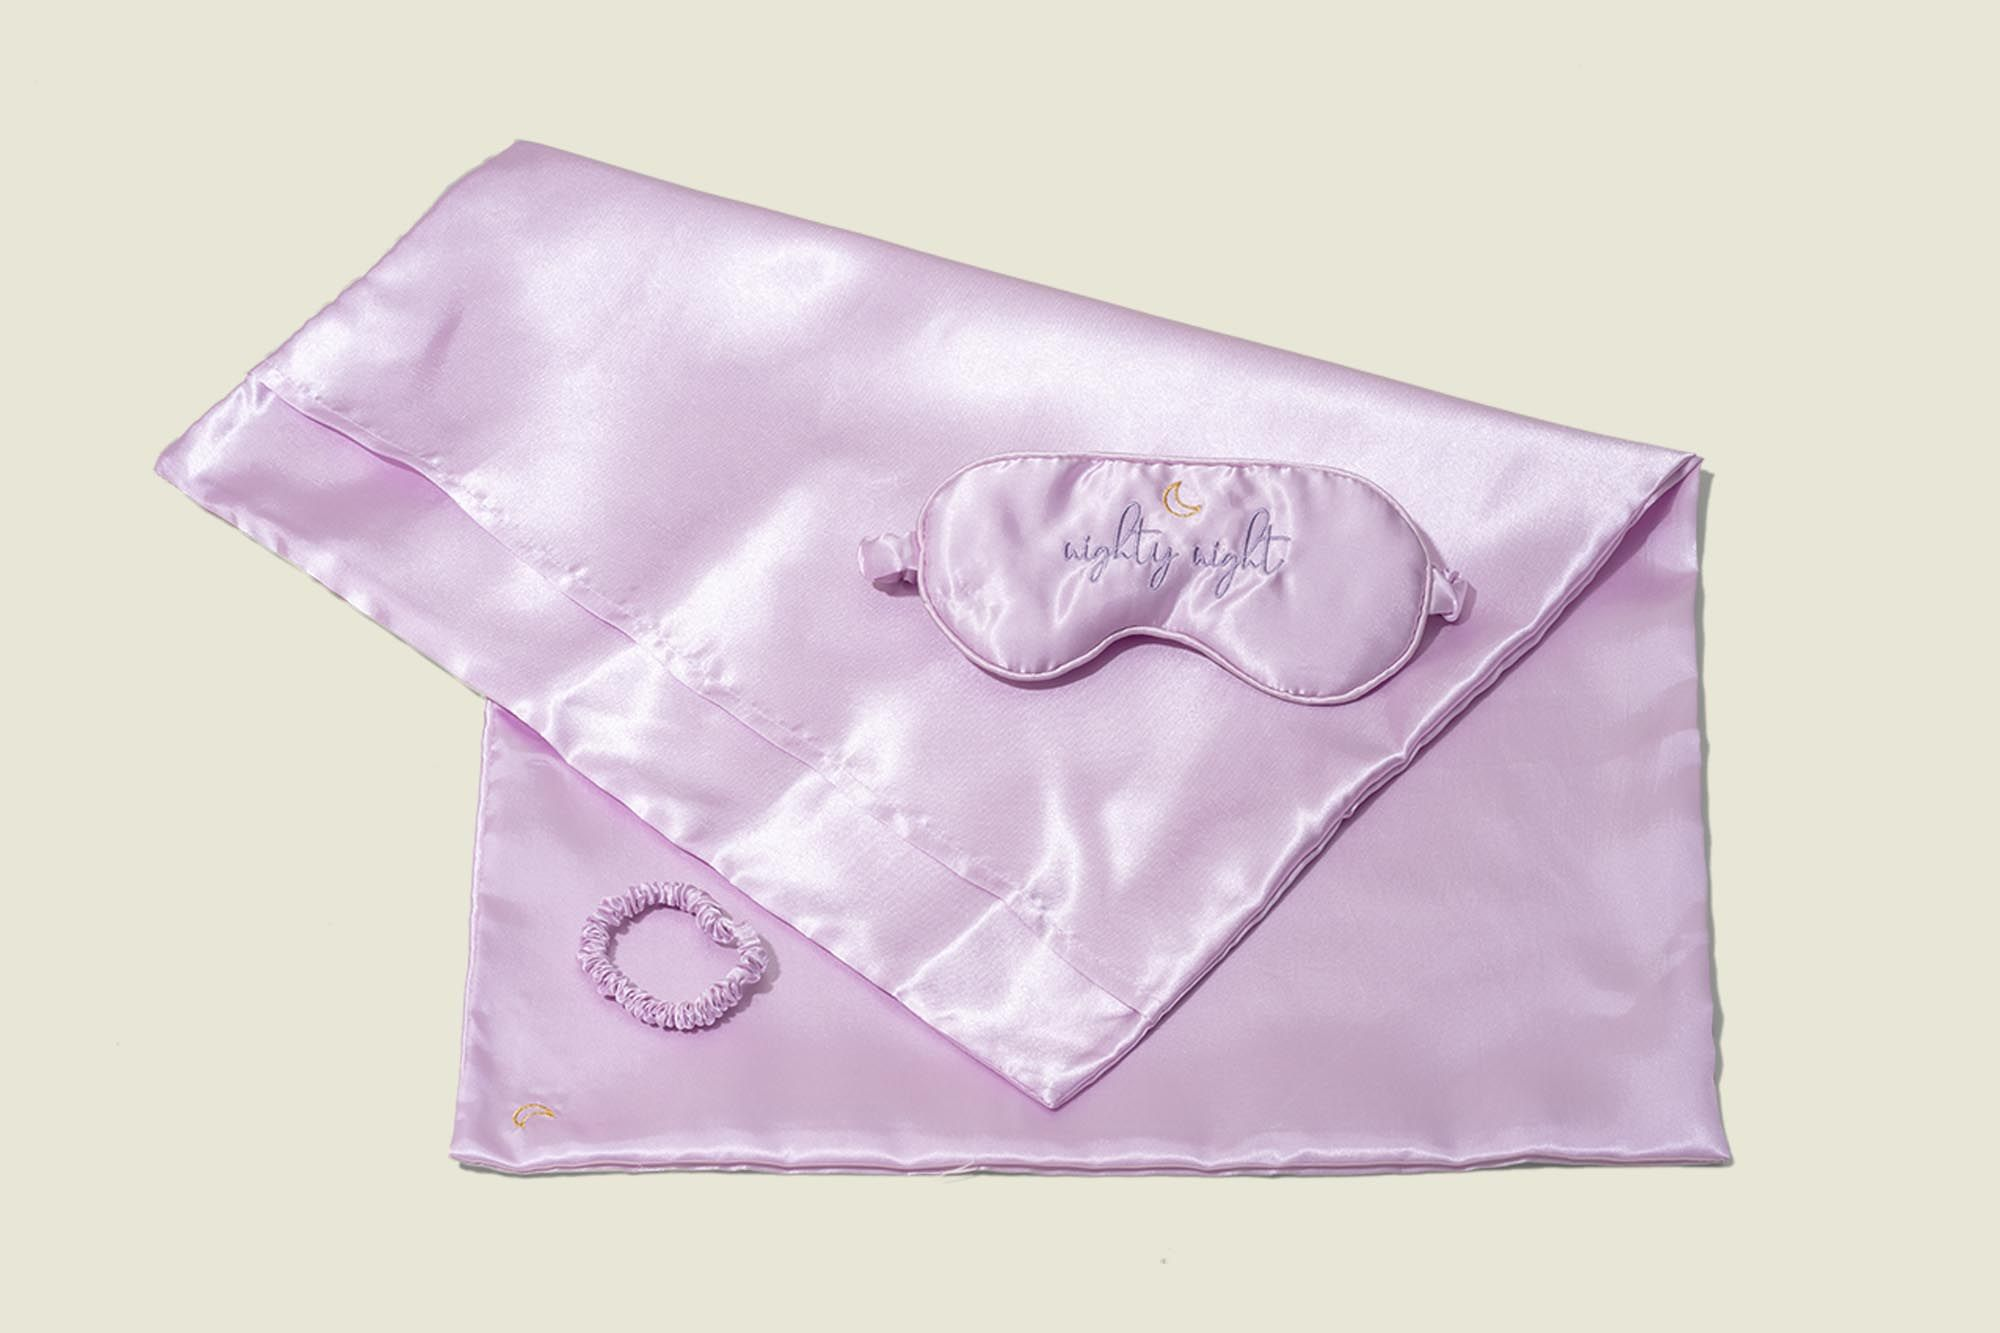 Satin sleep mask with scrunchie and pillow culeep mask with scrunchie and pillow casease